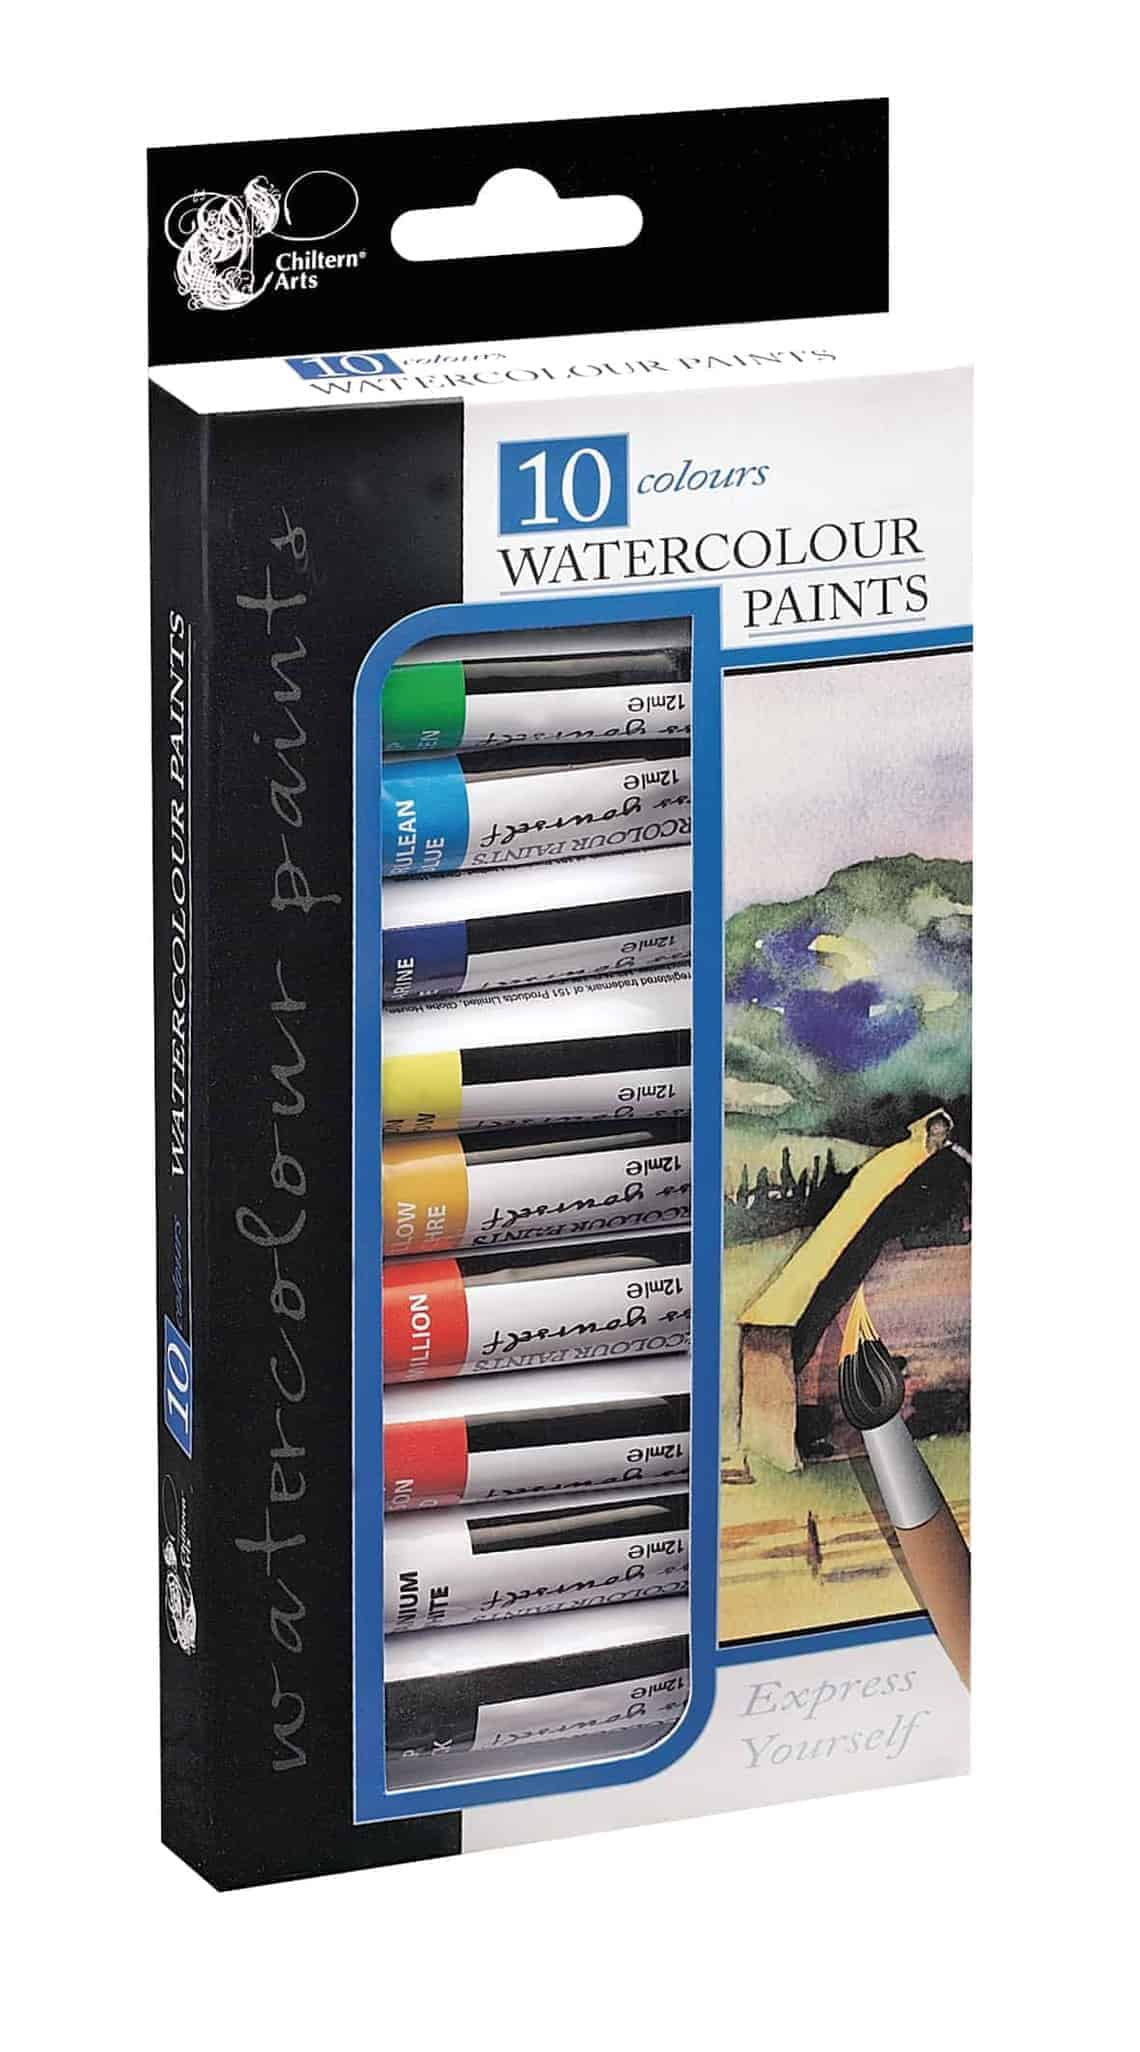 Chiltern Arts Water Colour Paints